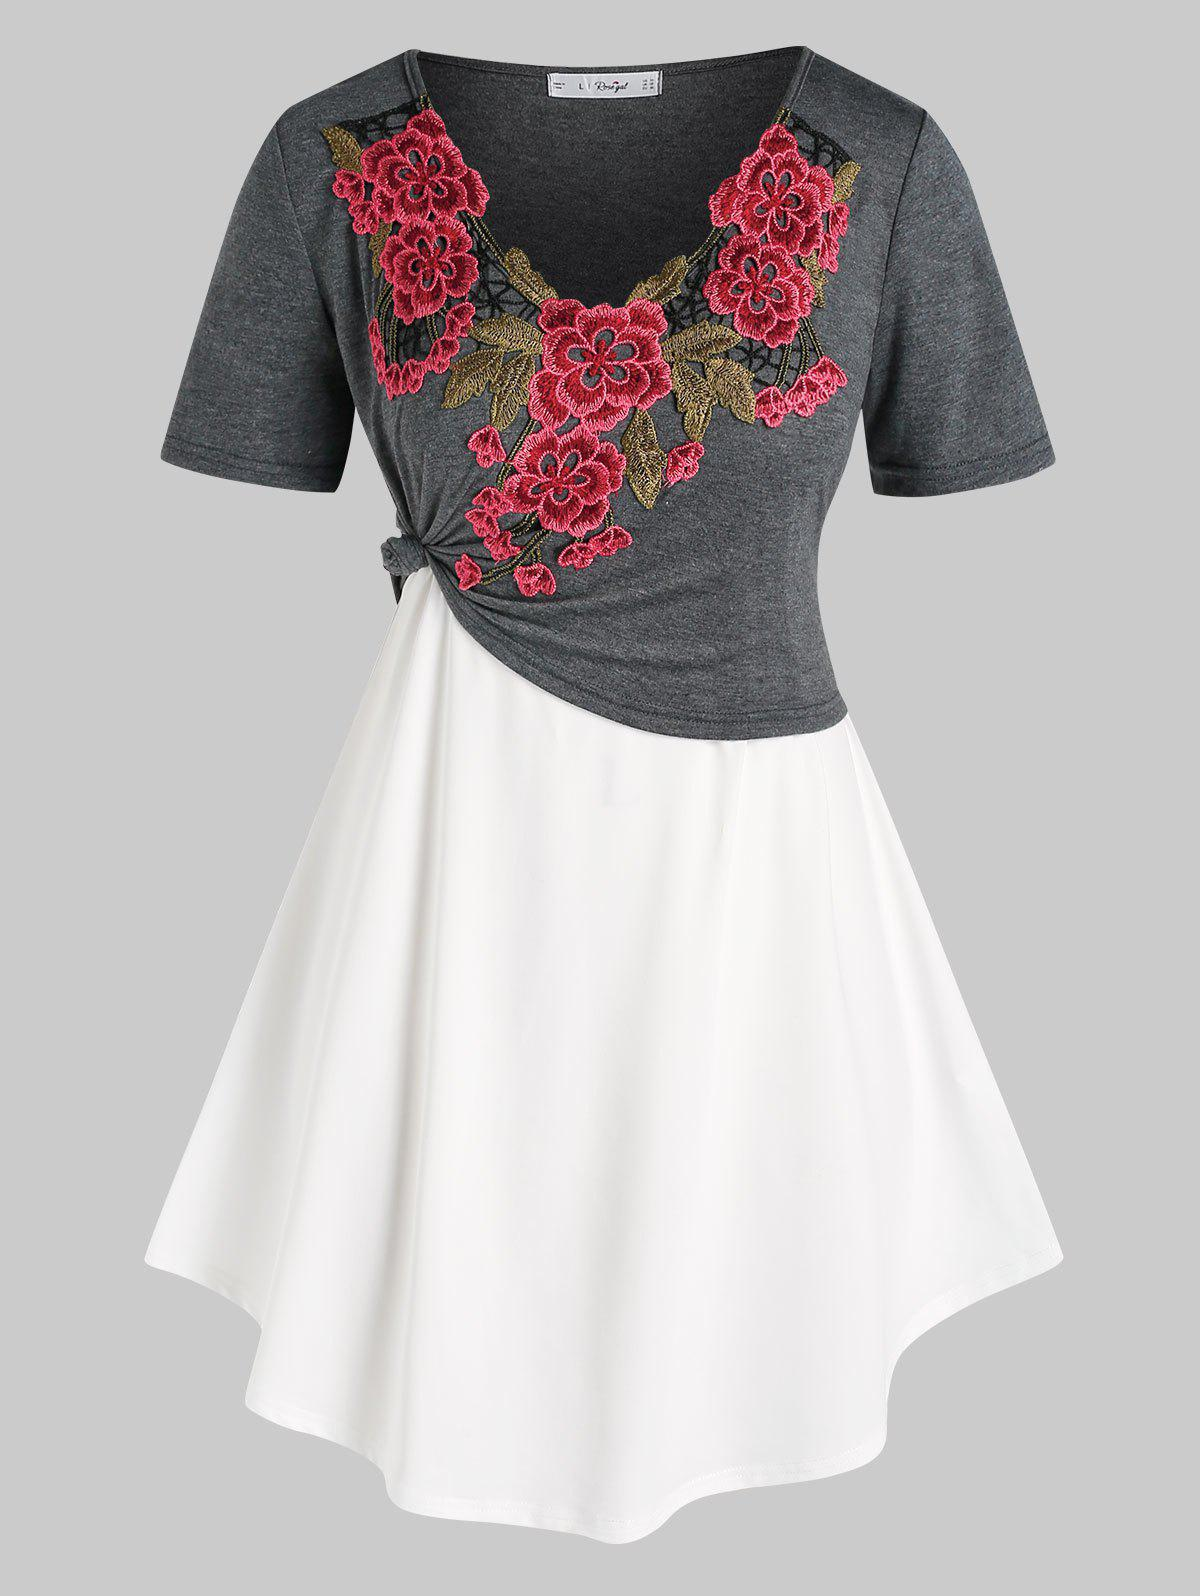 Plus Size Flower Applique Cropped Tee and Camisole Set - multicolor 3X